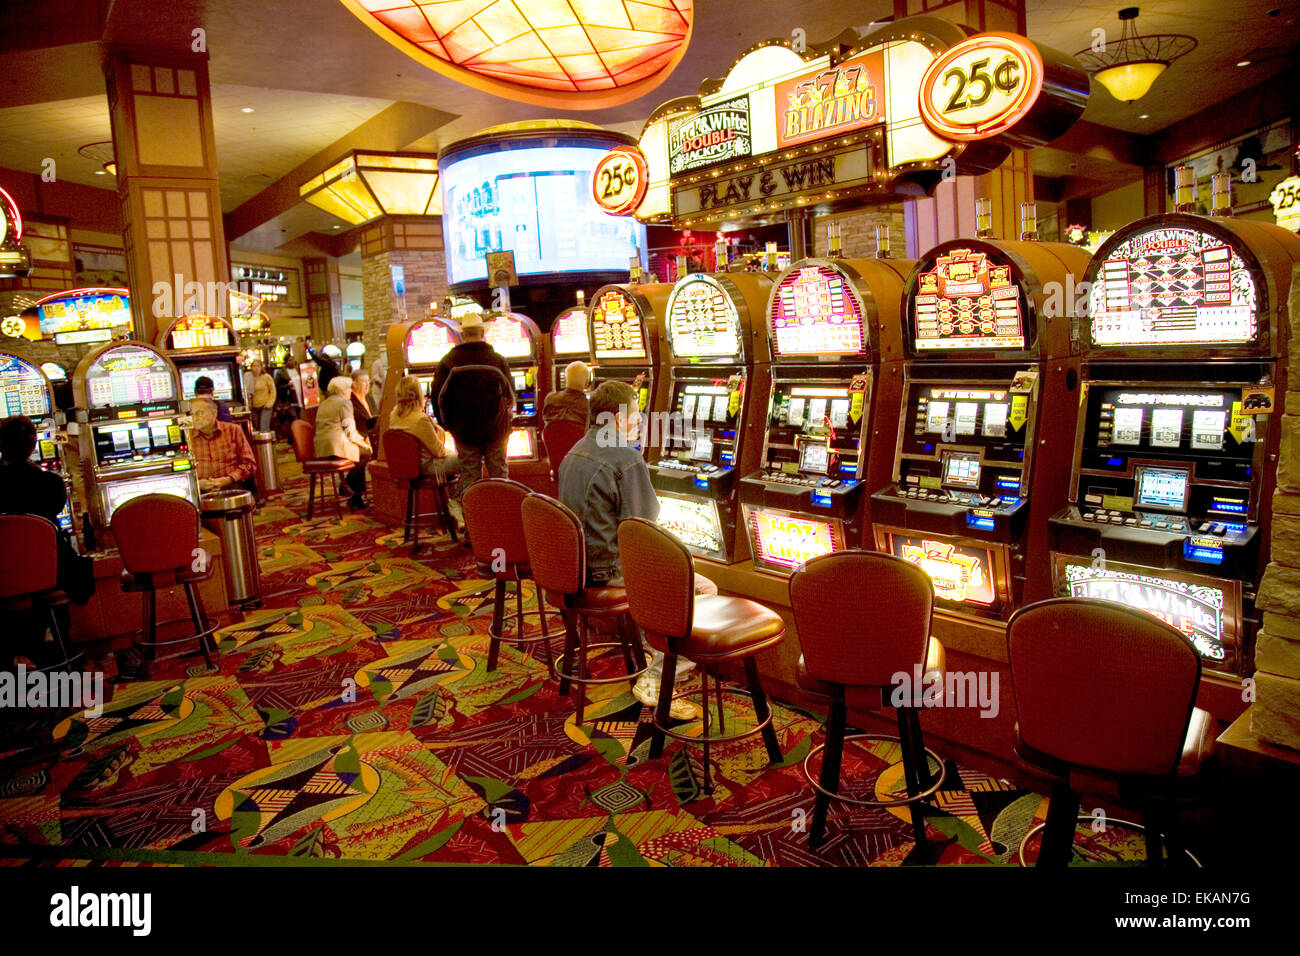 Casinos in oklahoma city ok adwords and gambling sites